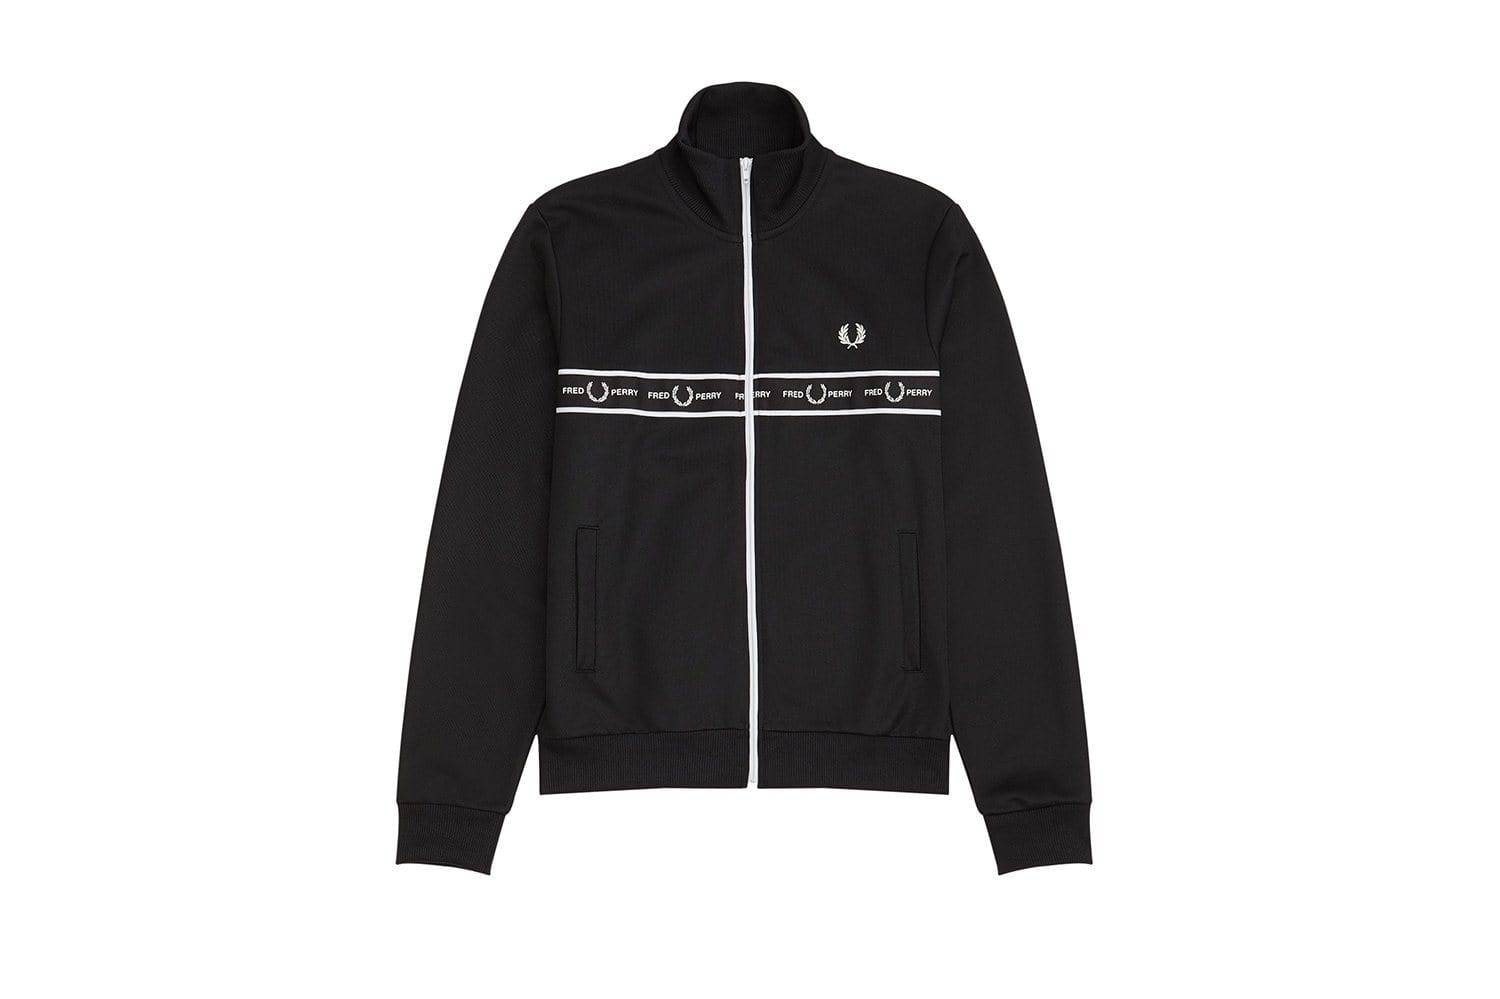 TAPED CHEST TRACK JACKET - J7501 MENS SOFTGOODS FRED PERRY